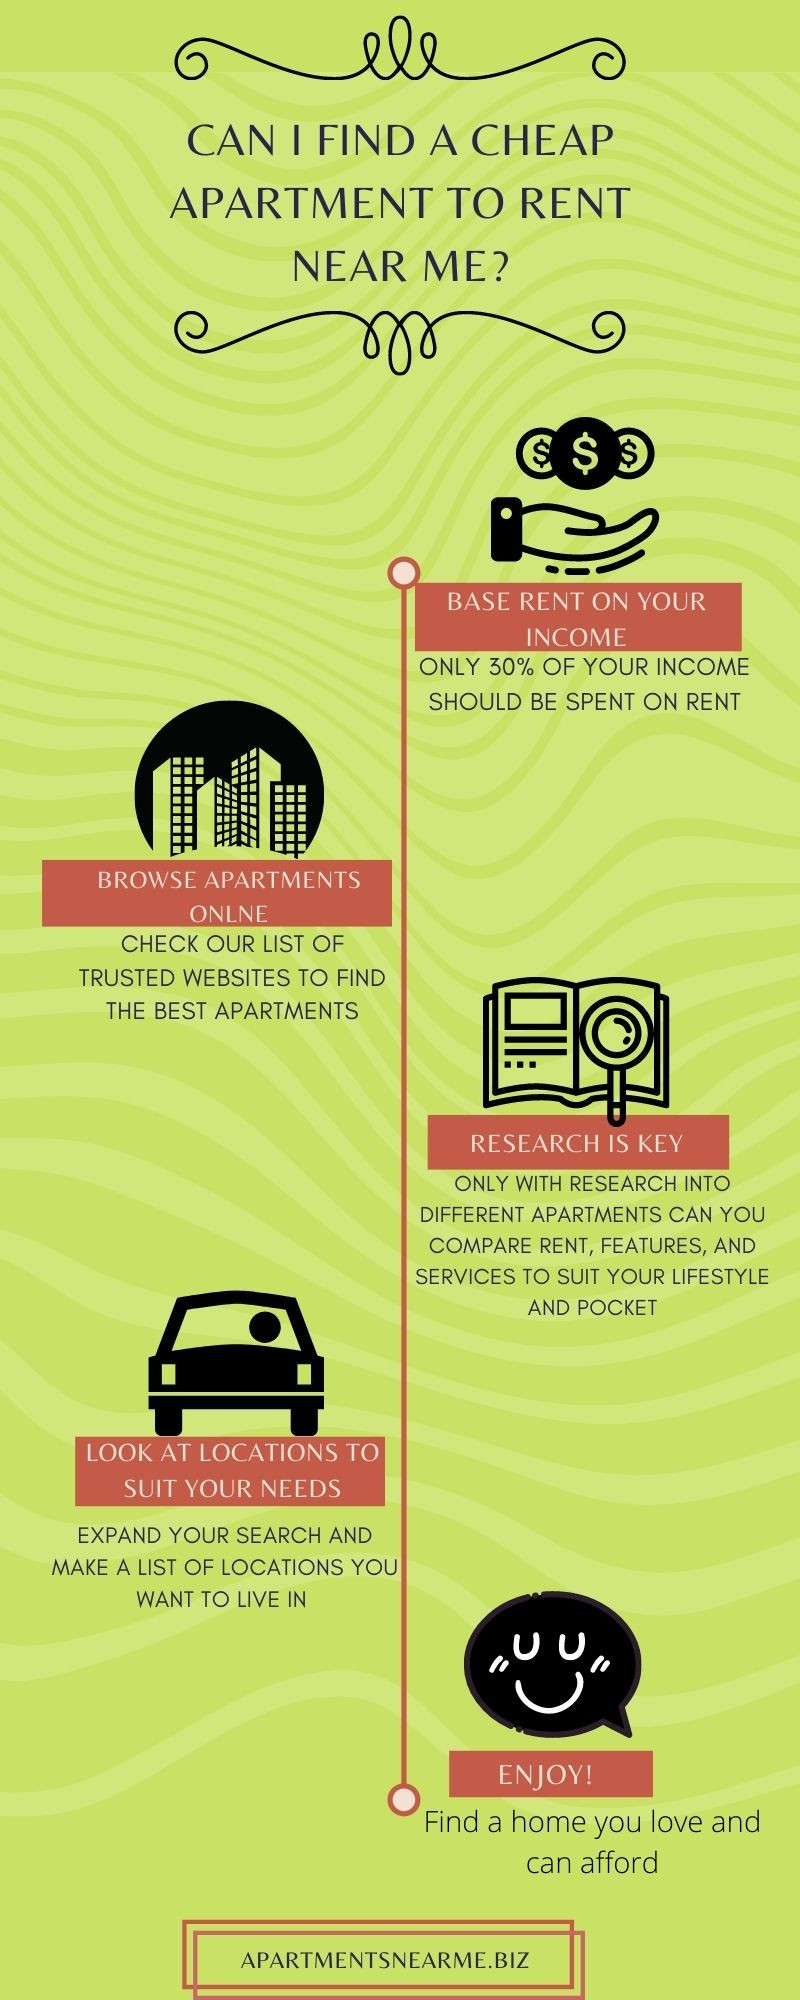 Detailed explanation of how you can find a cheap apartment for rent